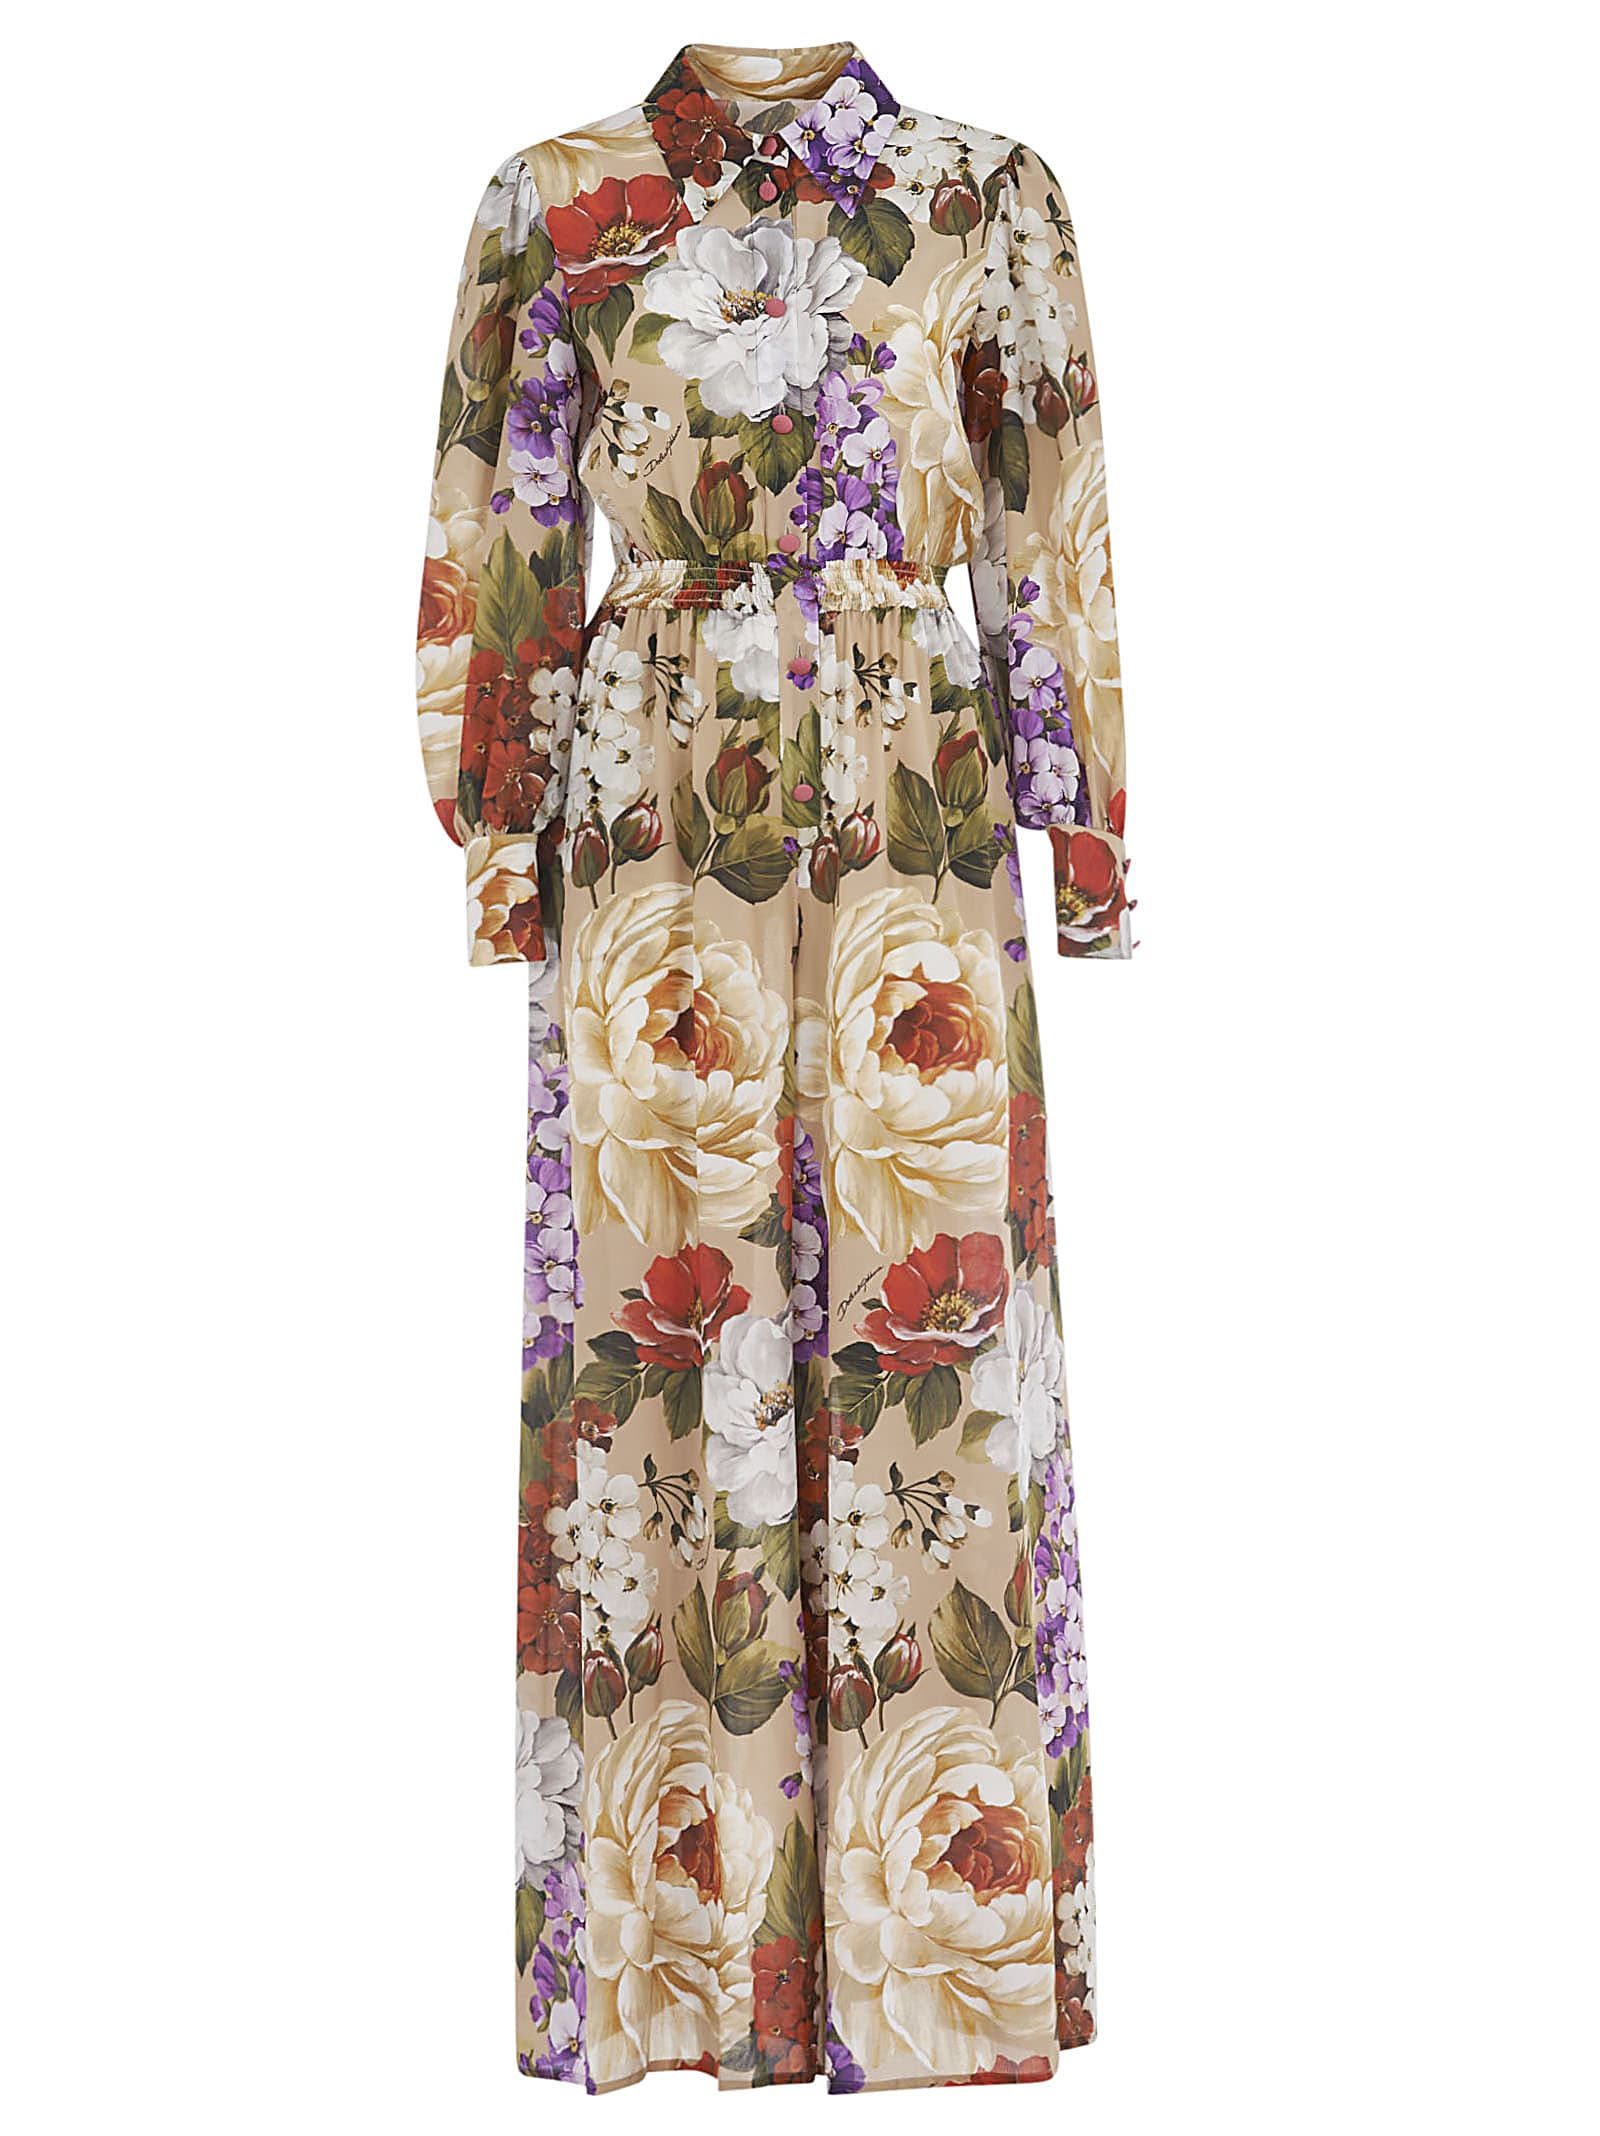 Buy Dolce & Gabbana Floral Print Belted Waist Maxi Dress online, shop Dolce & Gabbana with free shipping